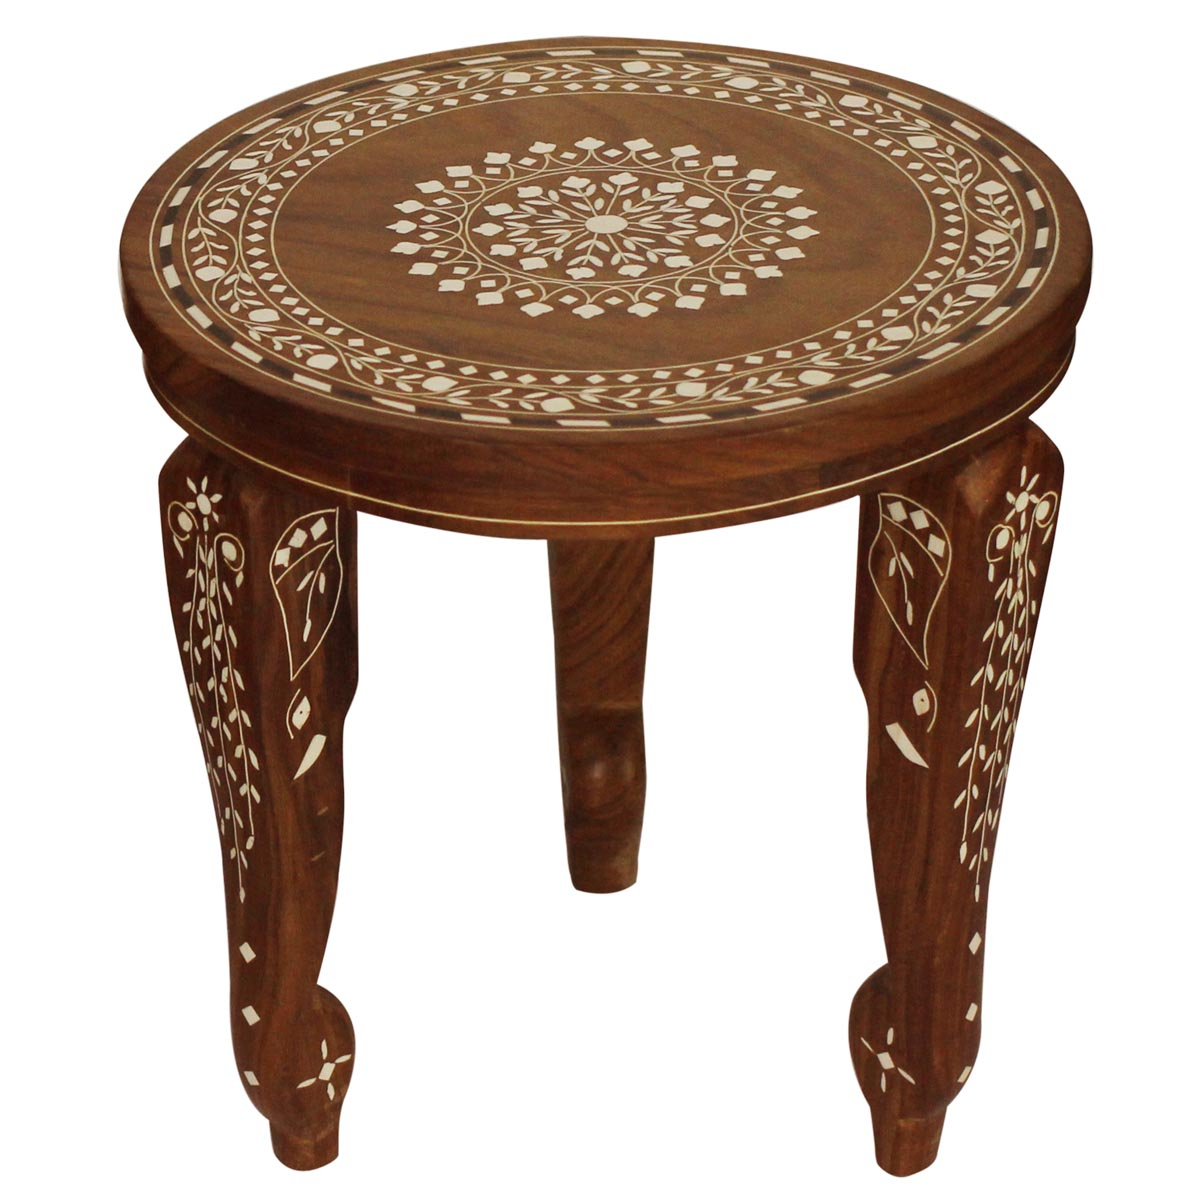 whole round wooden leg stand accent table with removable legs floral mandala acrylic metal hairpin comfortable outdoor chairs yellow oval tablecloth ashley recliners meyda tiffany